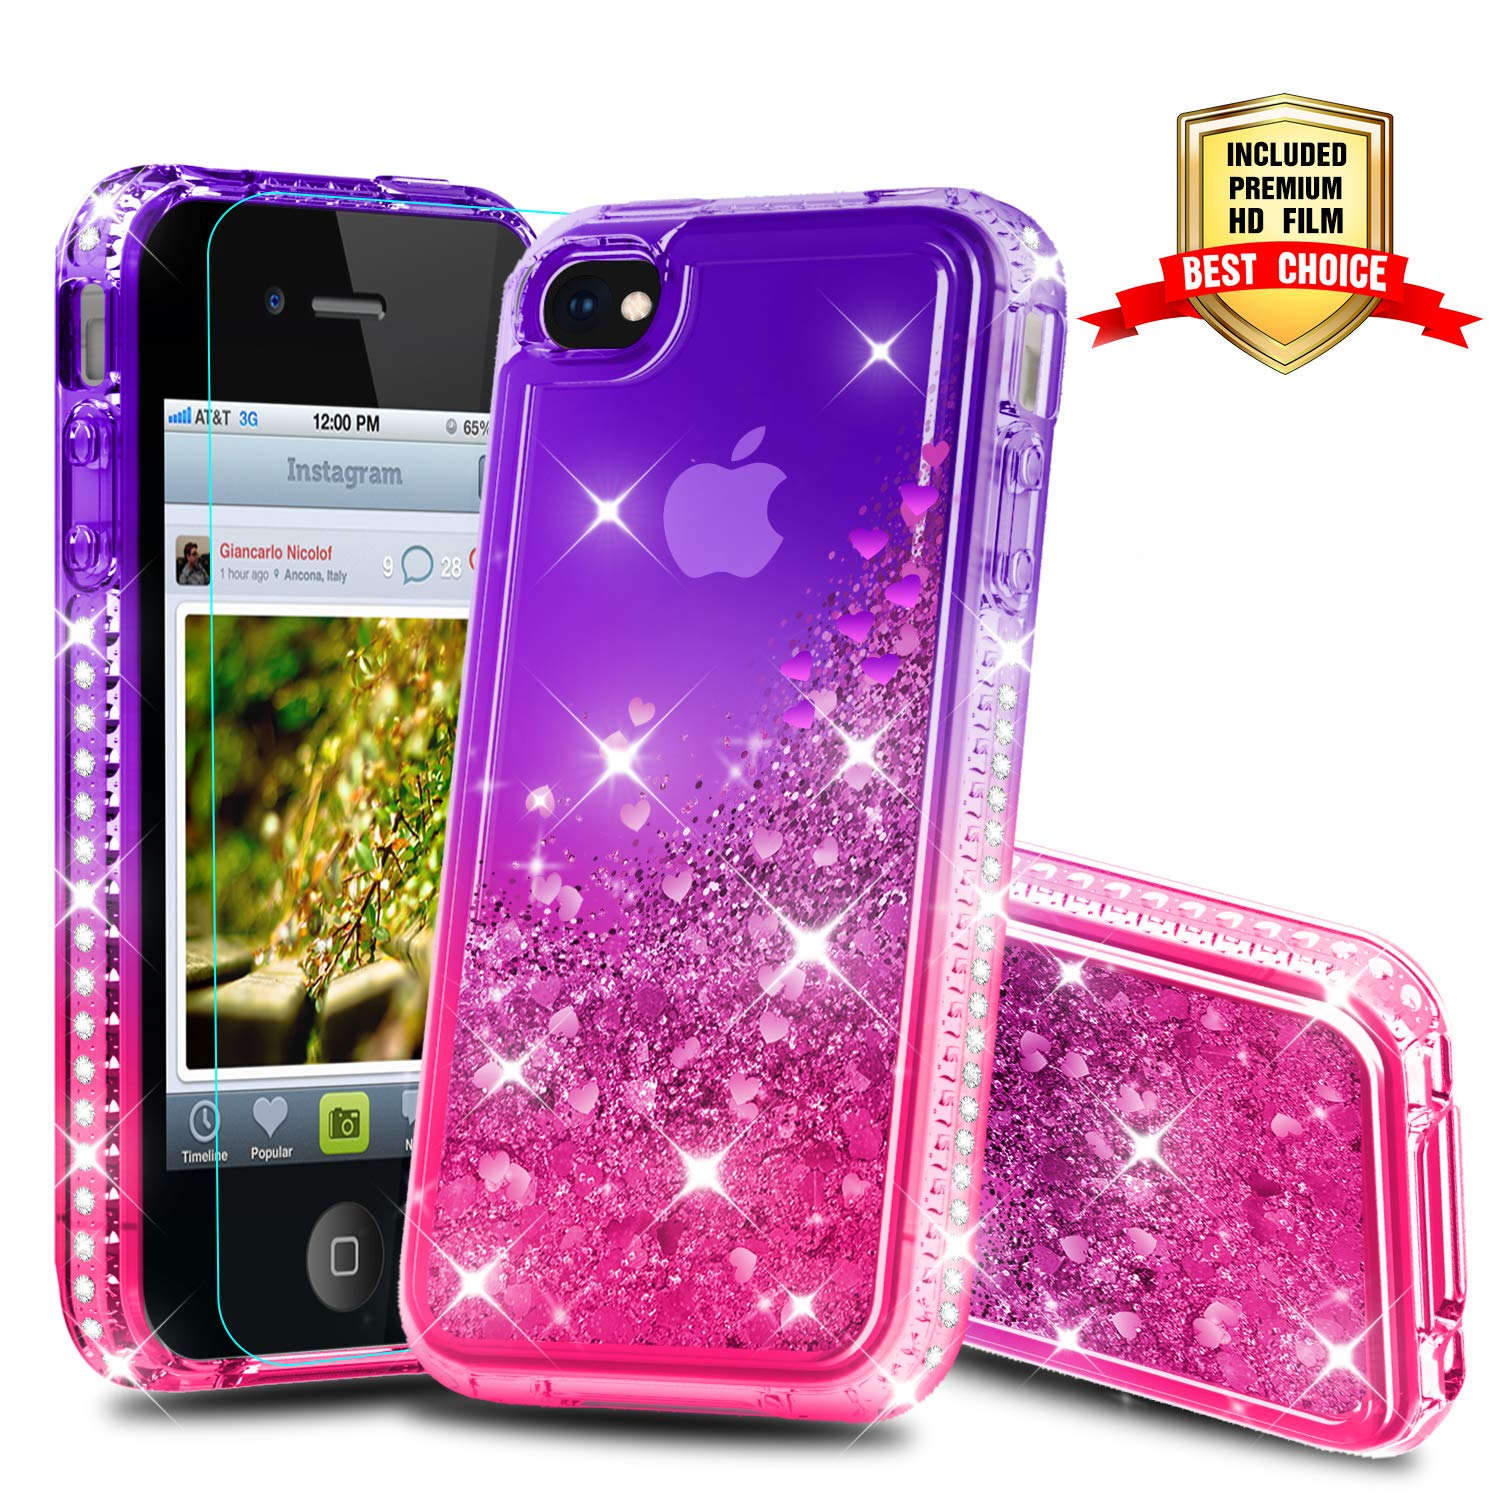 quality design 34c02 f4851 iPhone 4S Case, iPhone 4S Girly Cases with HD Screen Protector, Atump Fun  Glitter Liquid Sparkle Diamond Cute TPU Silicone Protective Phone Cover  Case ...